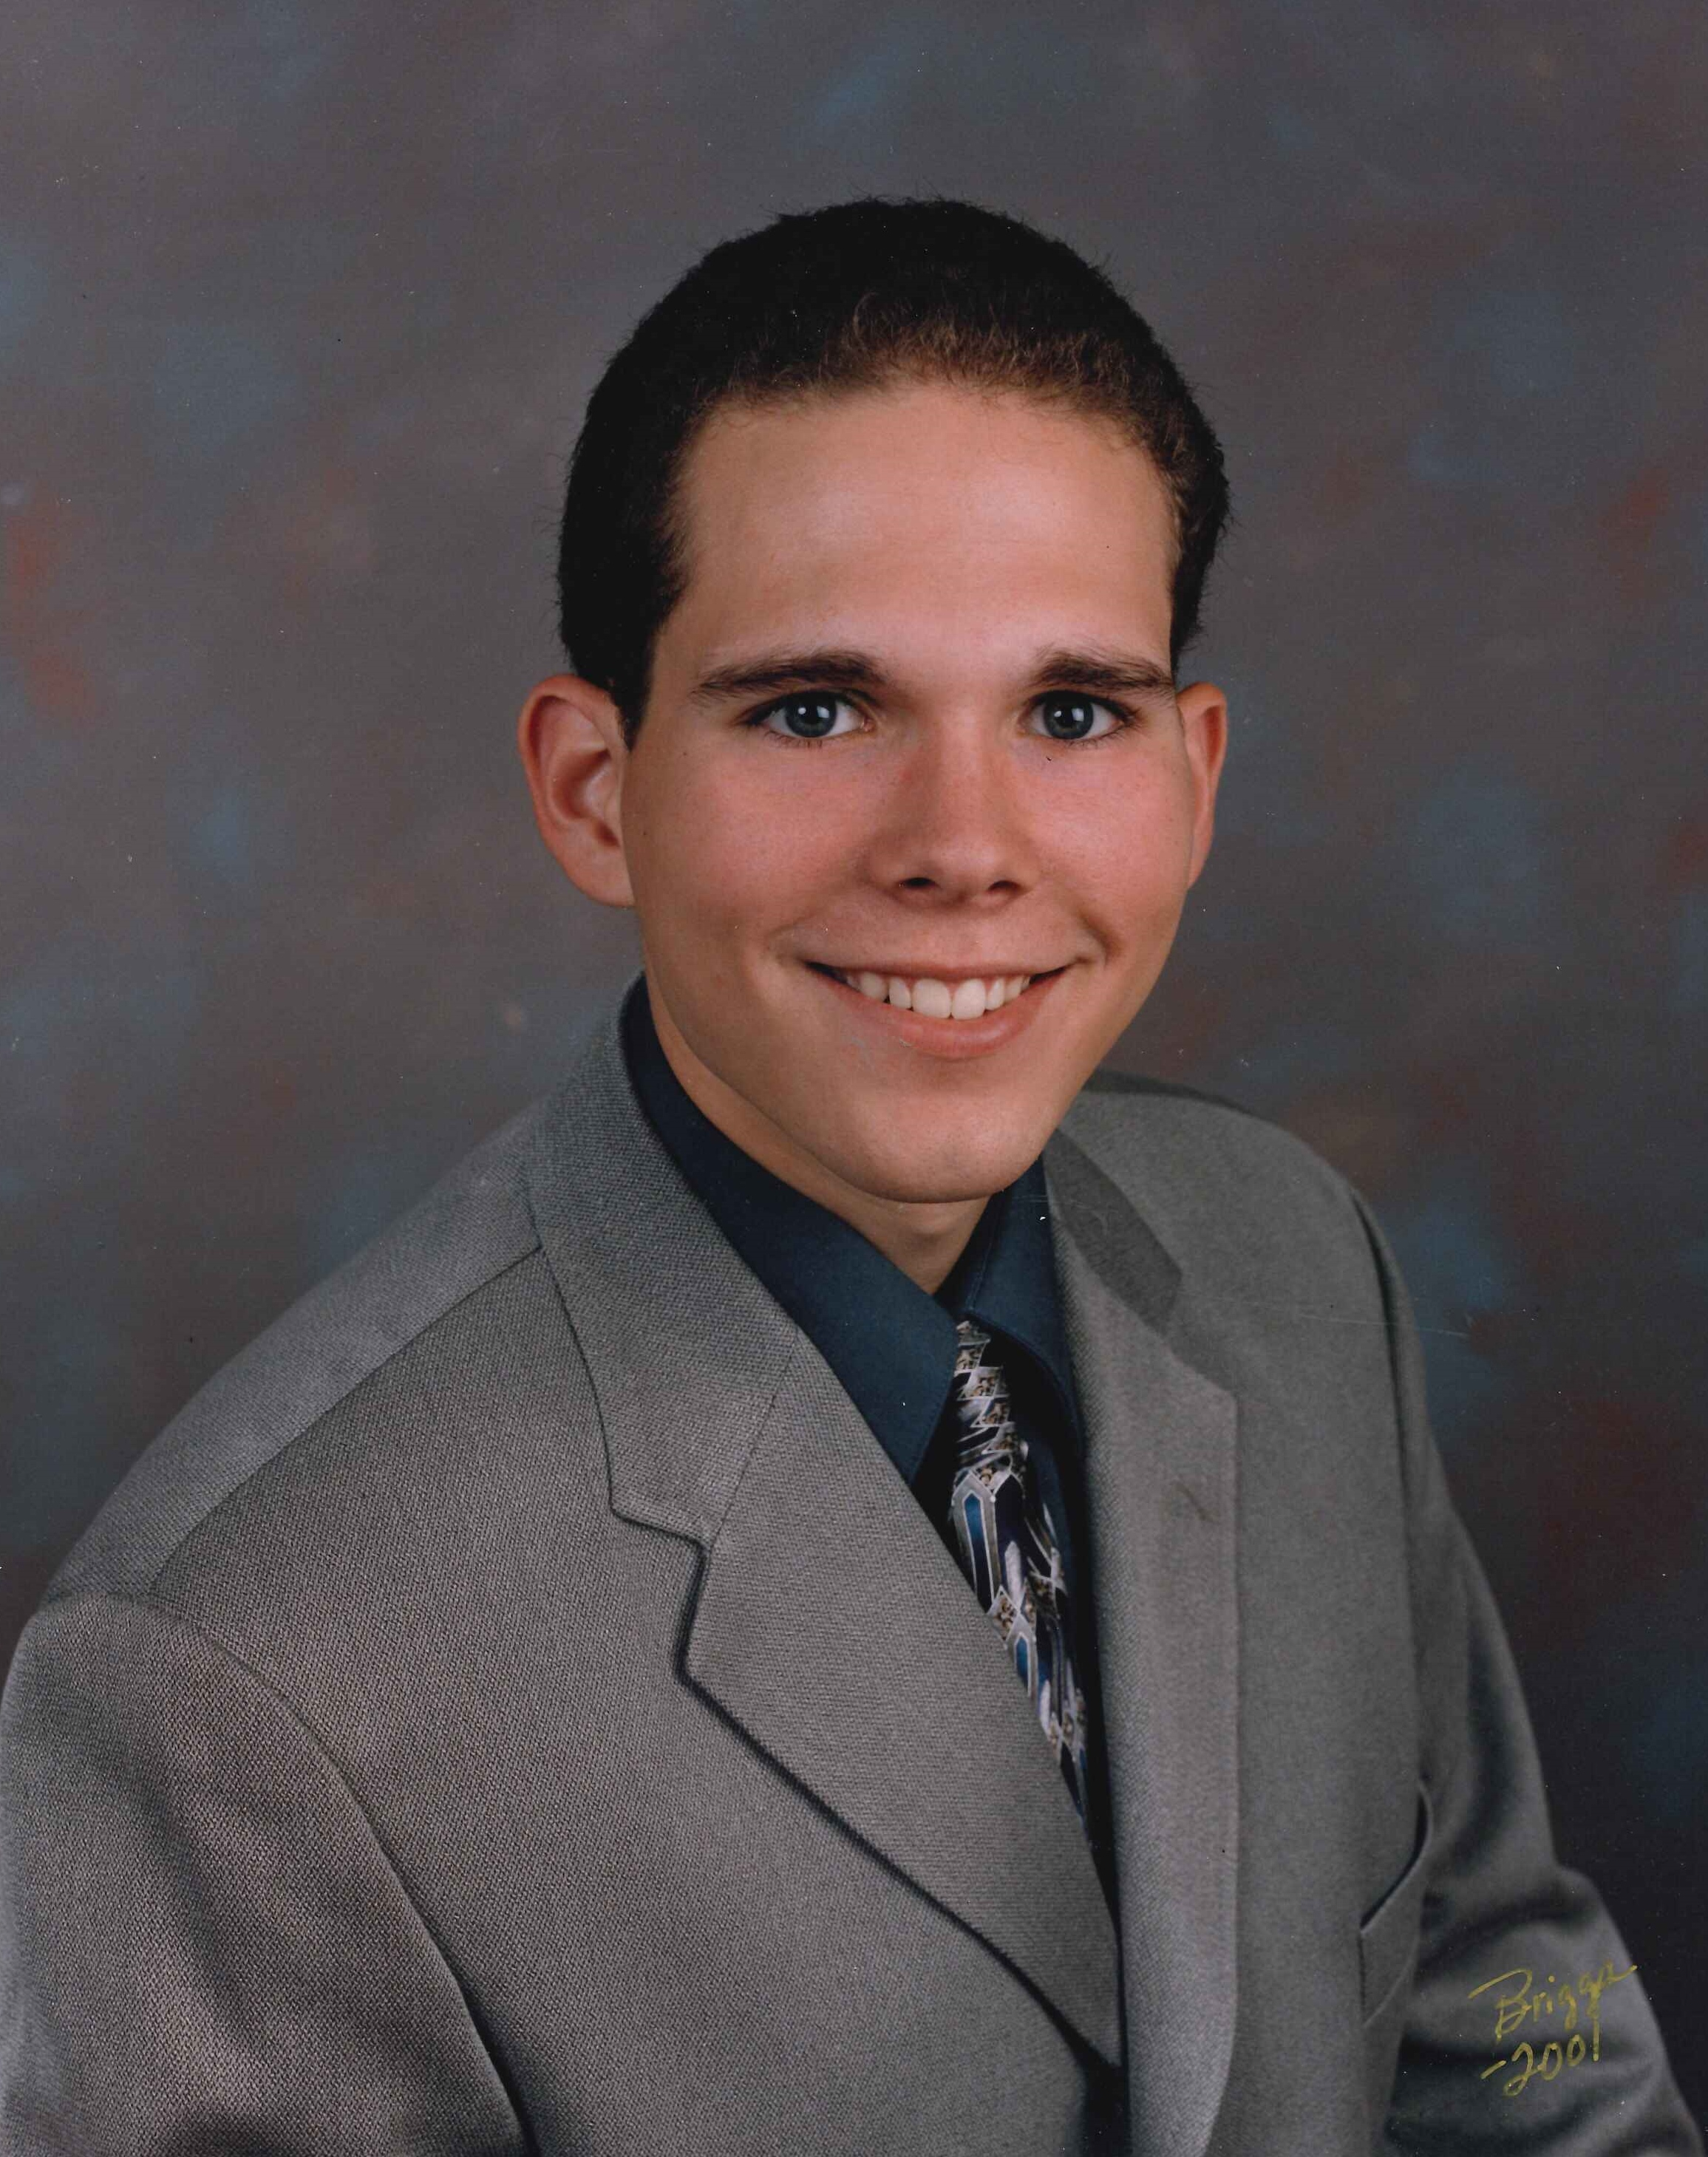 RICHARD LEE LAUGHMAN, JR, 34, of Martins Ferry, OH , passed away Monday,  October 16, 2017.